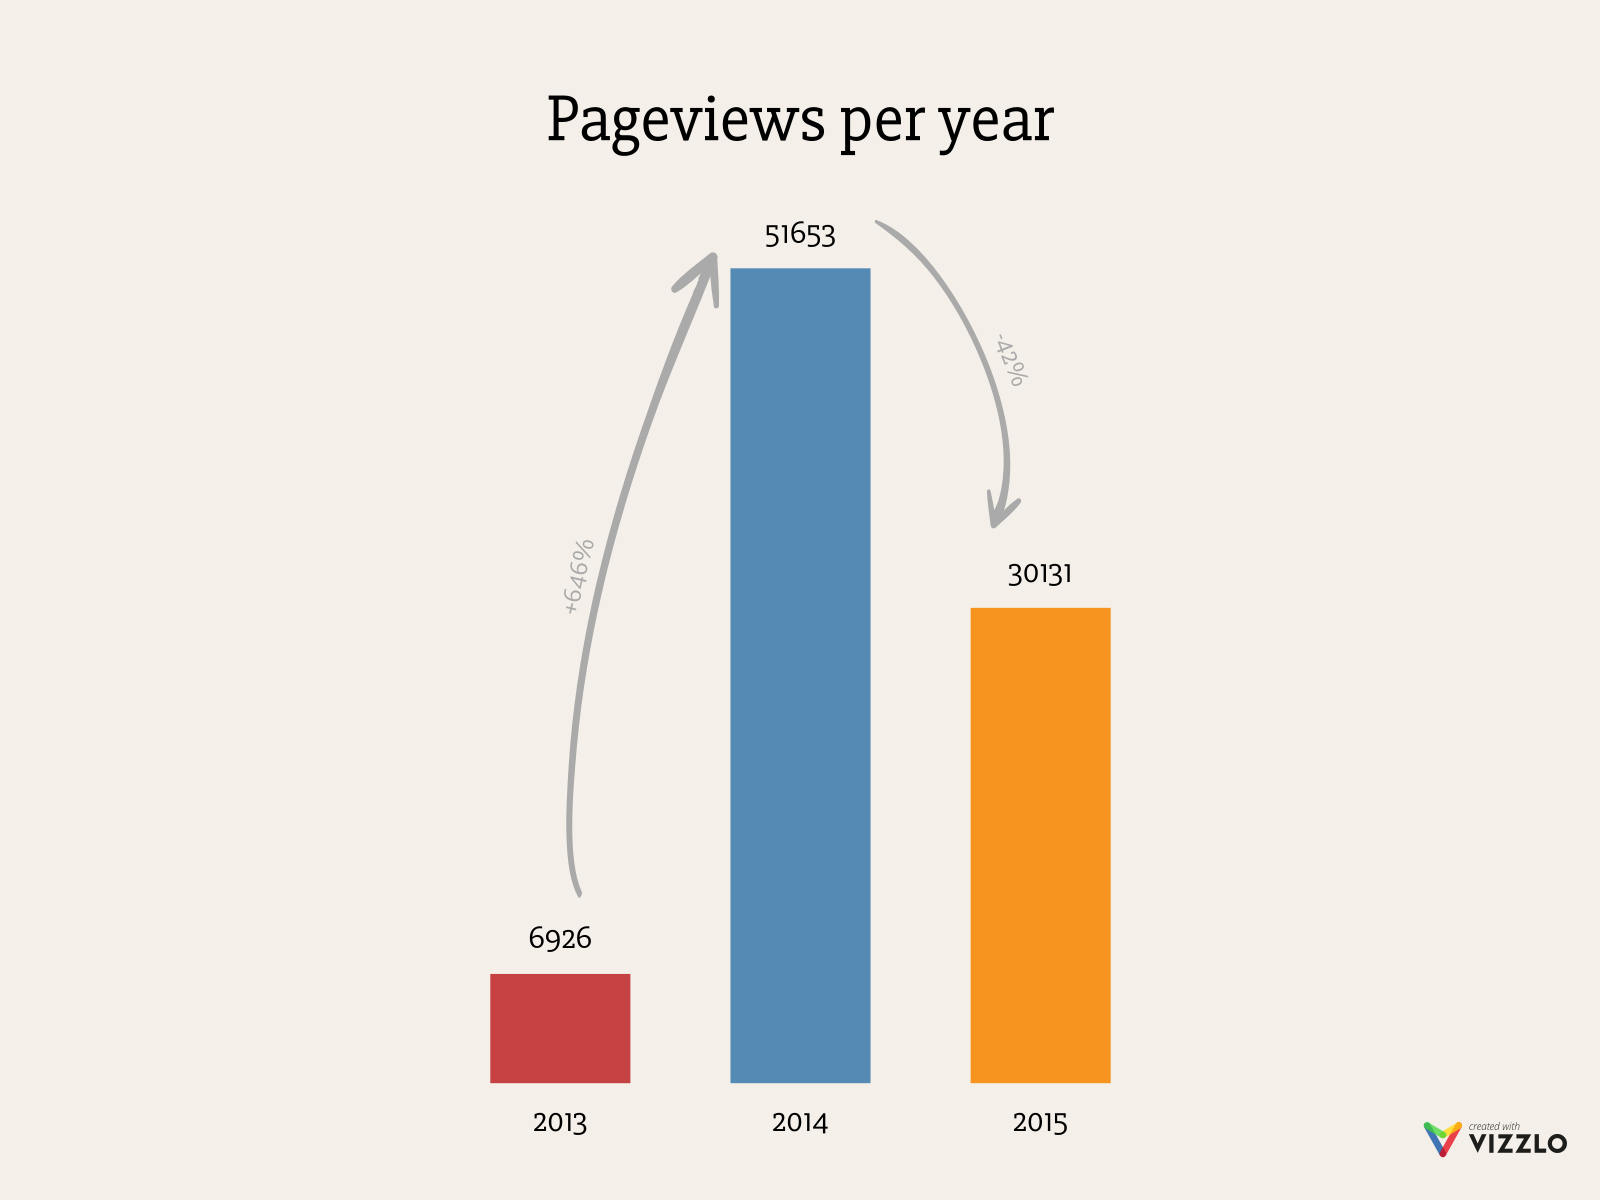 Pageviews per year